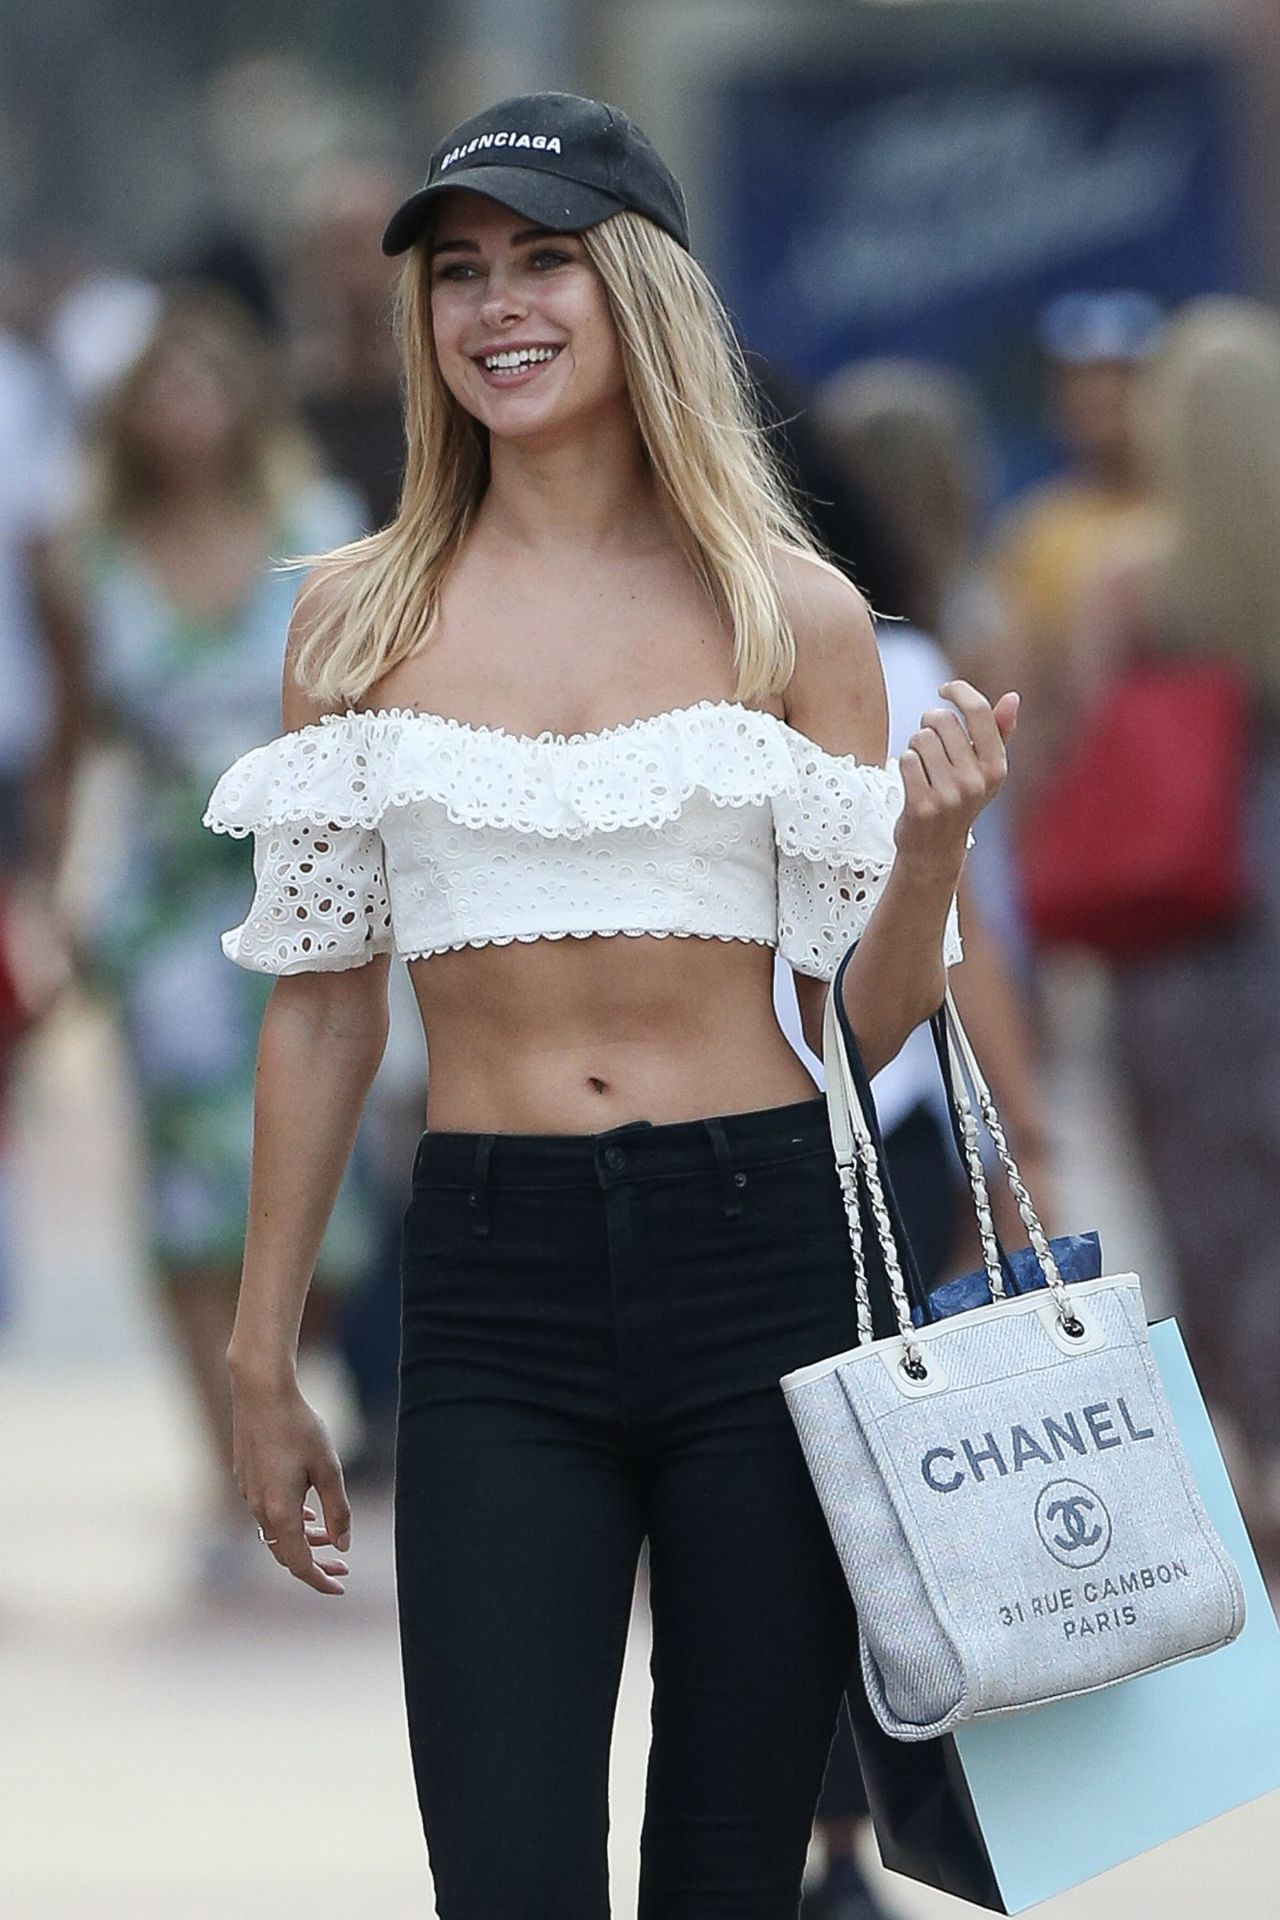 Kimberley Garner In A Tiny Crop Top And Tight Jeans 01/14/2019